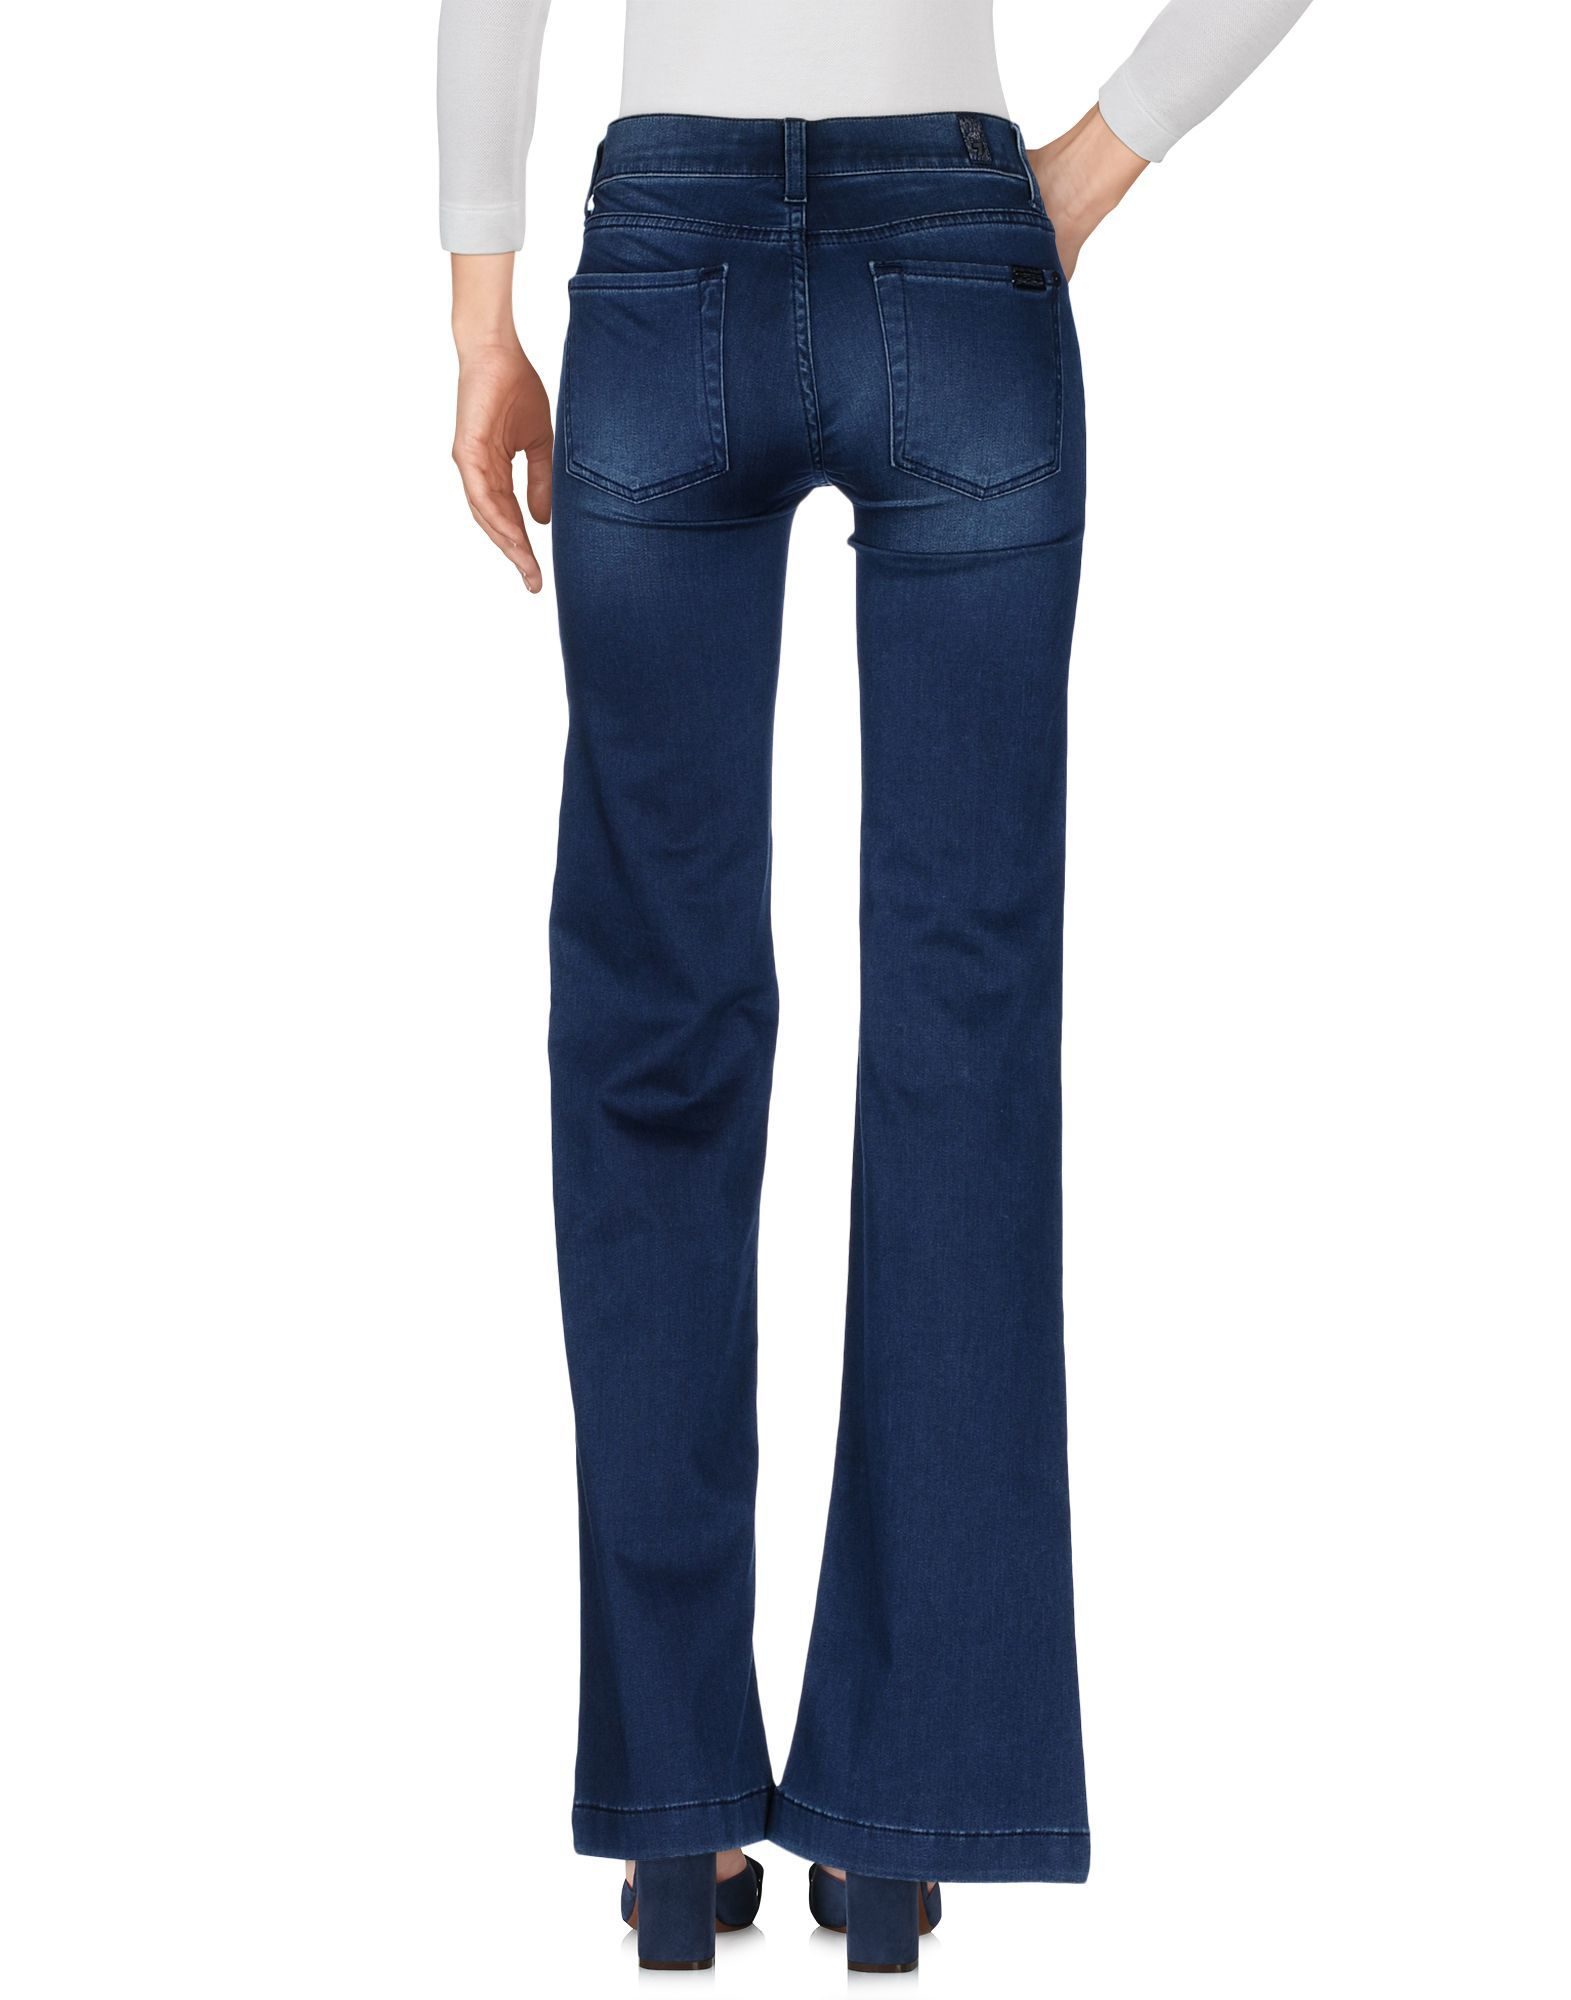 7 For All Mankind Blue Cotton Flare Wide Leg Jeans